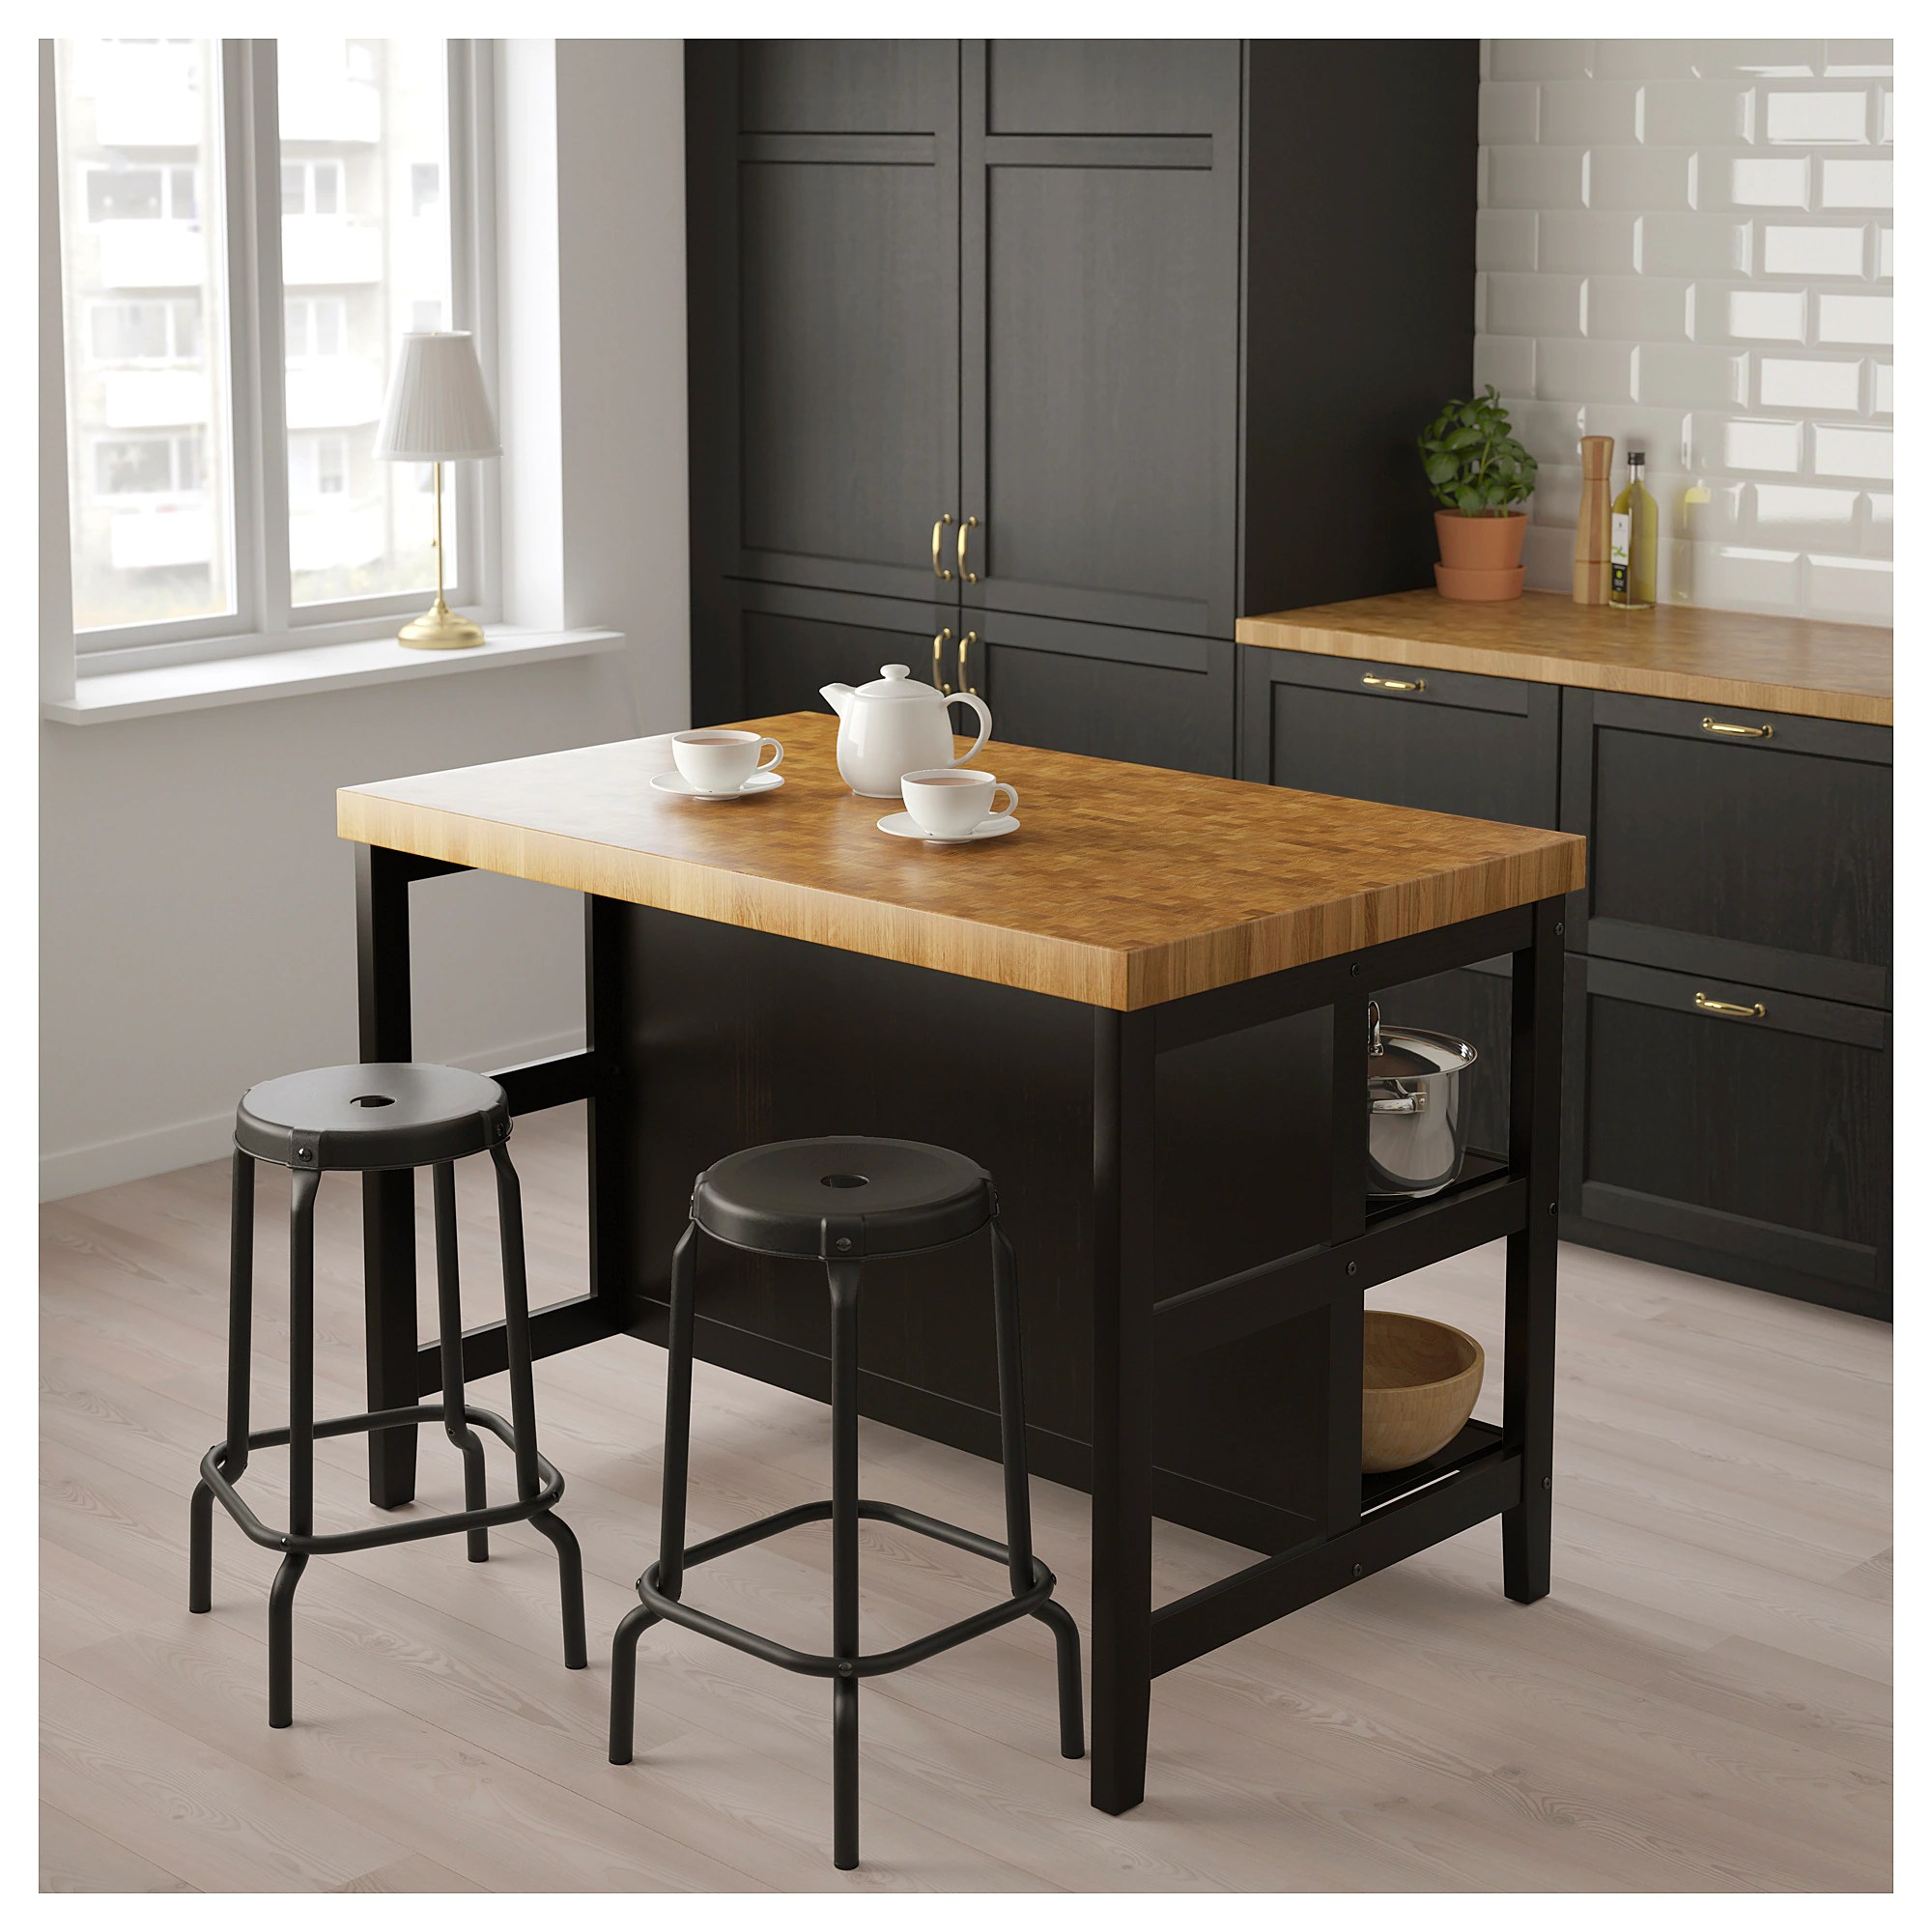 Black Island Kitchen Vadholma Kitchen Island Black Oak